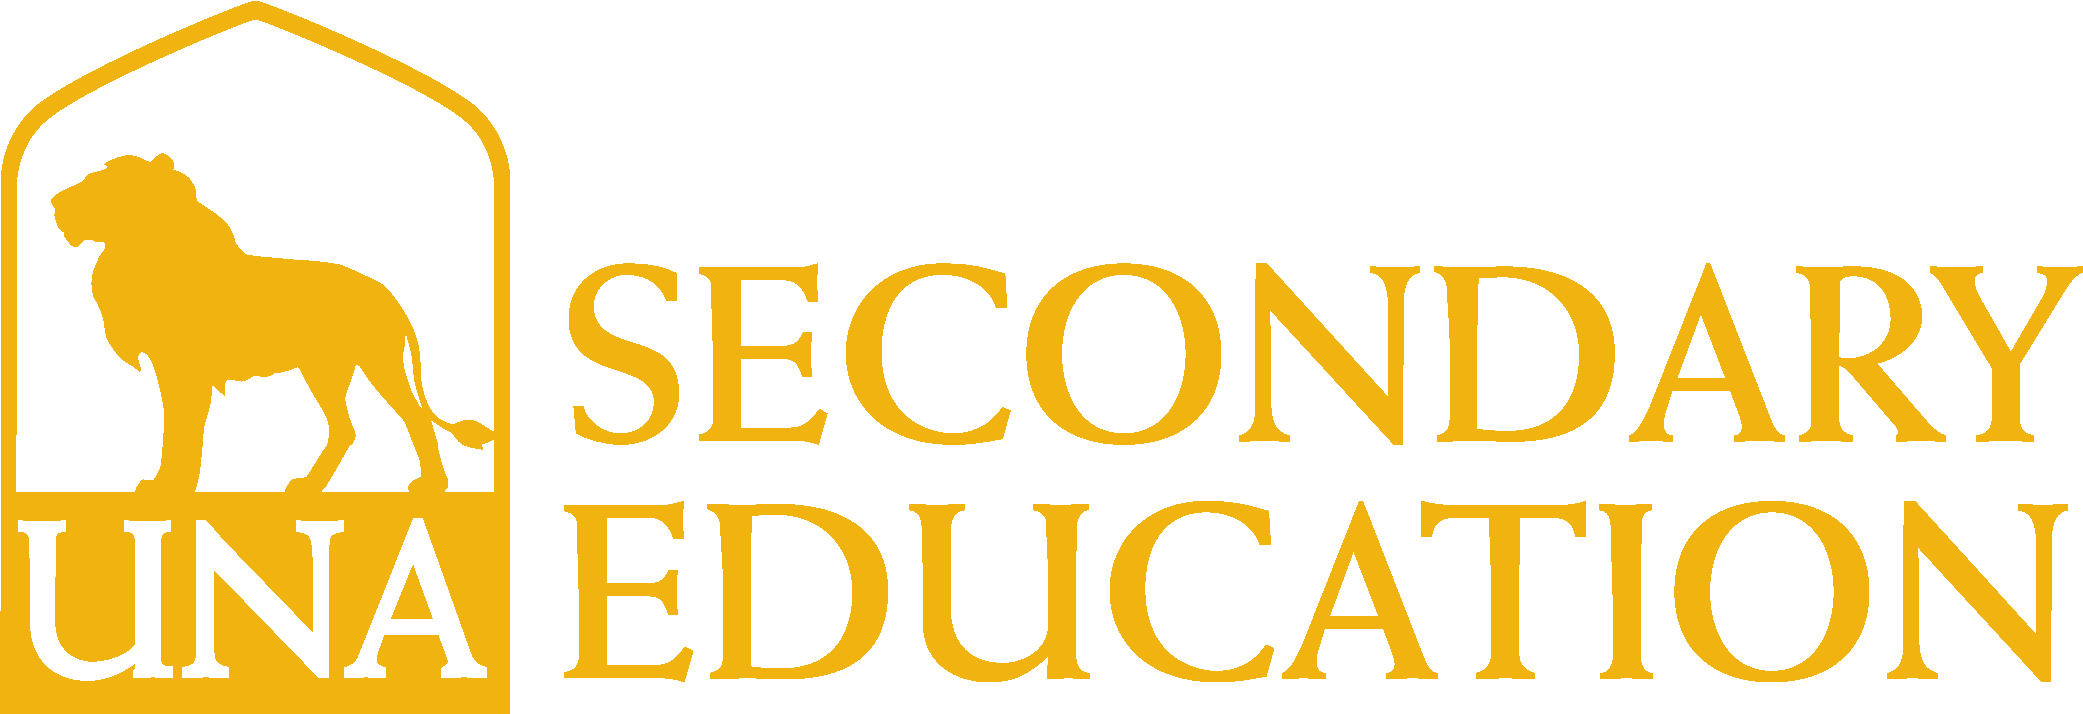 College of Education and Human Services - Secondary Education Logo - Gold - Version 3